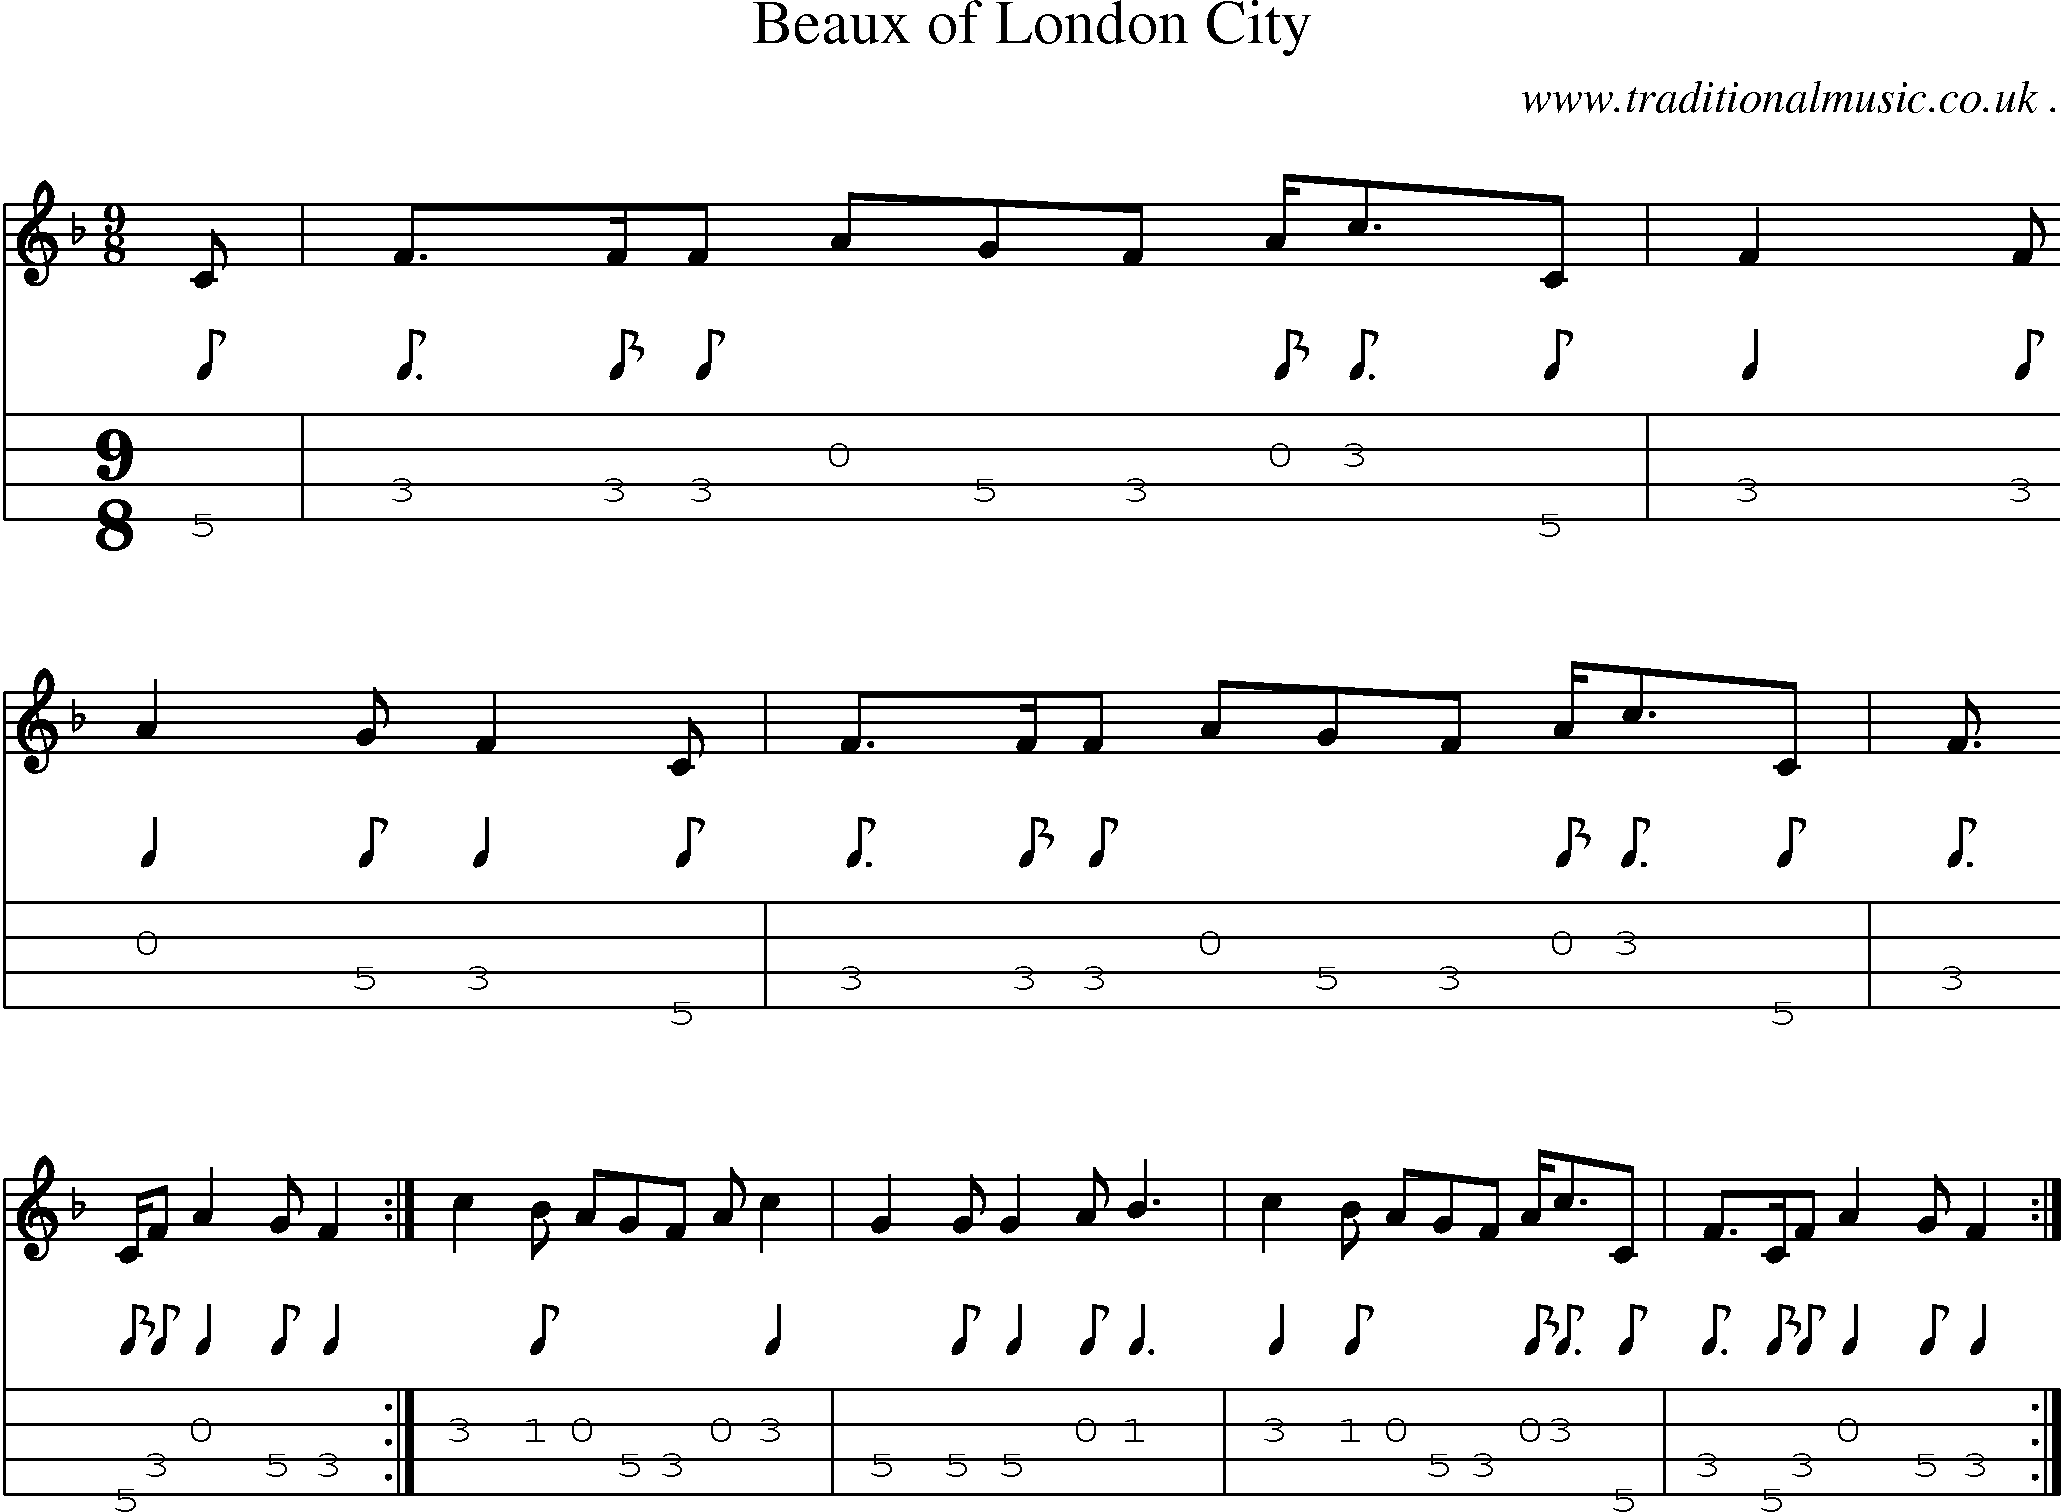 Folk and Traditional Music, Sheet-Music, Mandolin tab, midi, mp3 and PDF for: Beaux Of London City